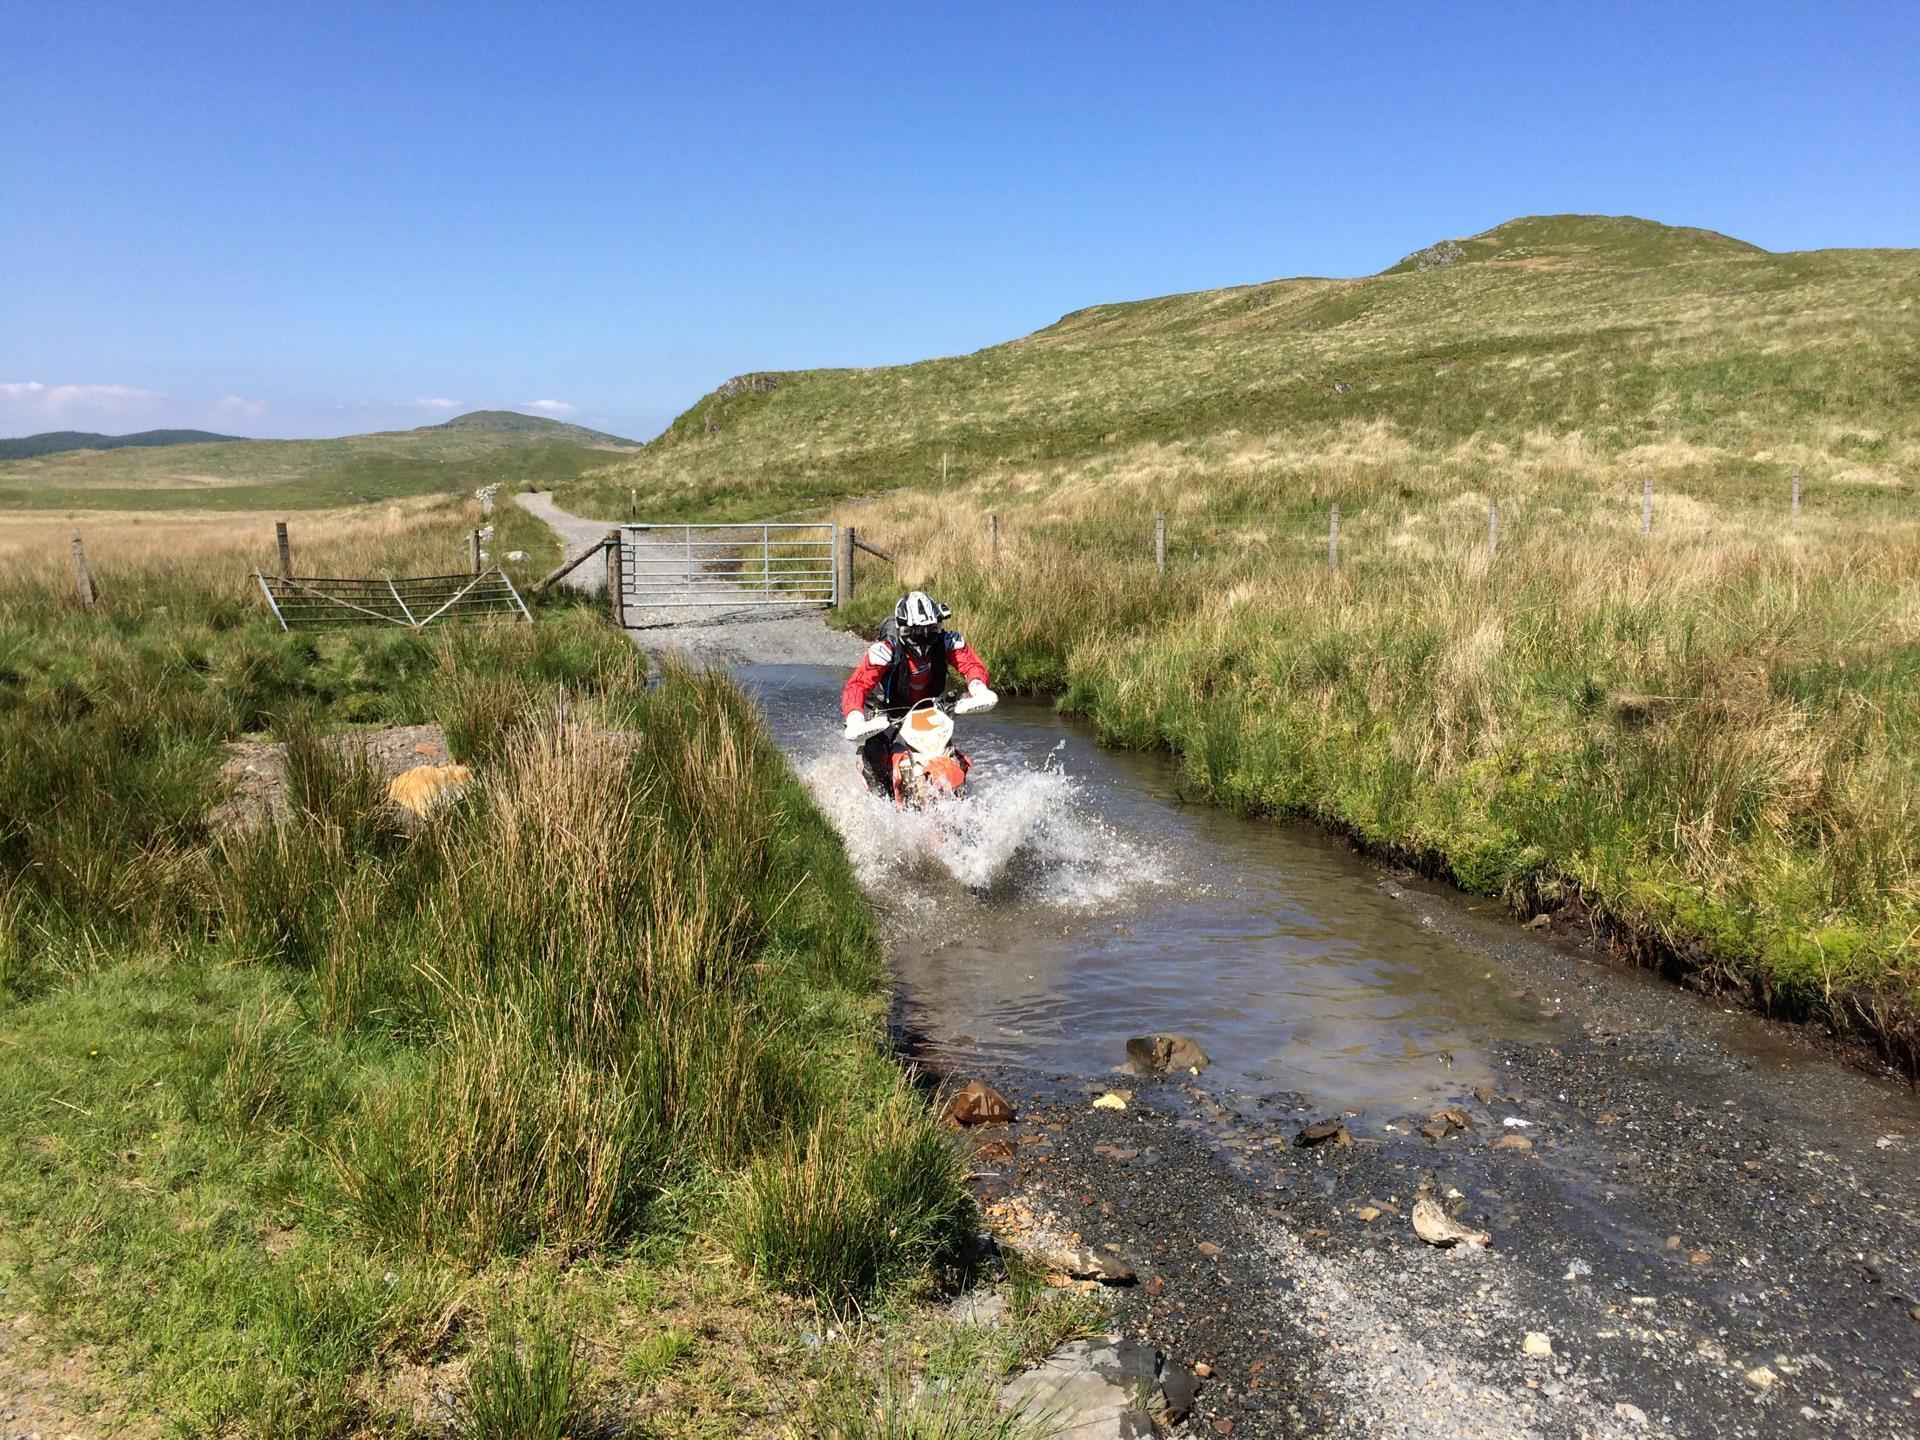 Motorcyclist fording a stream